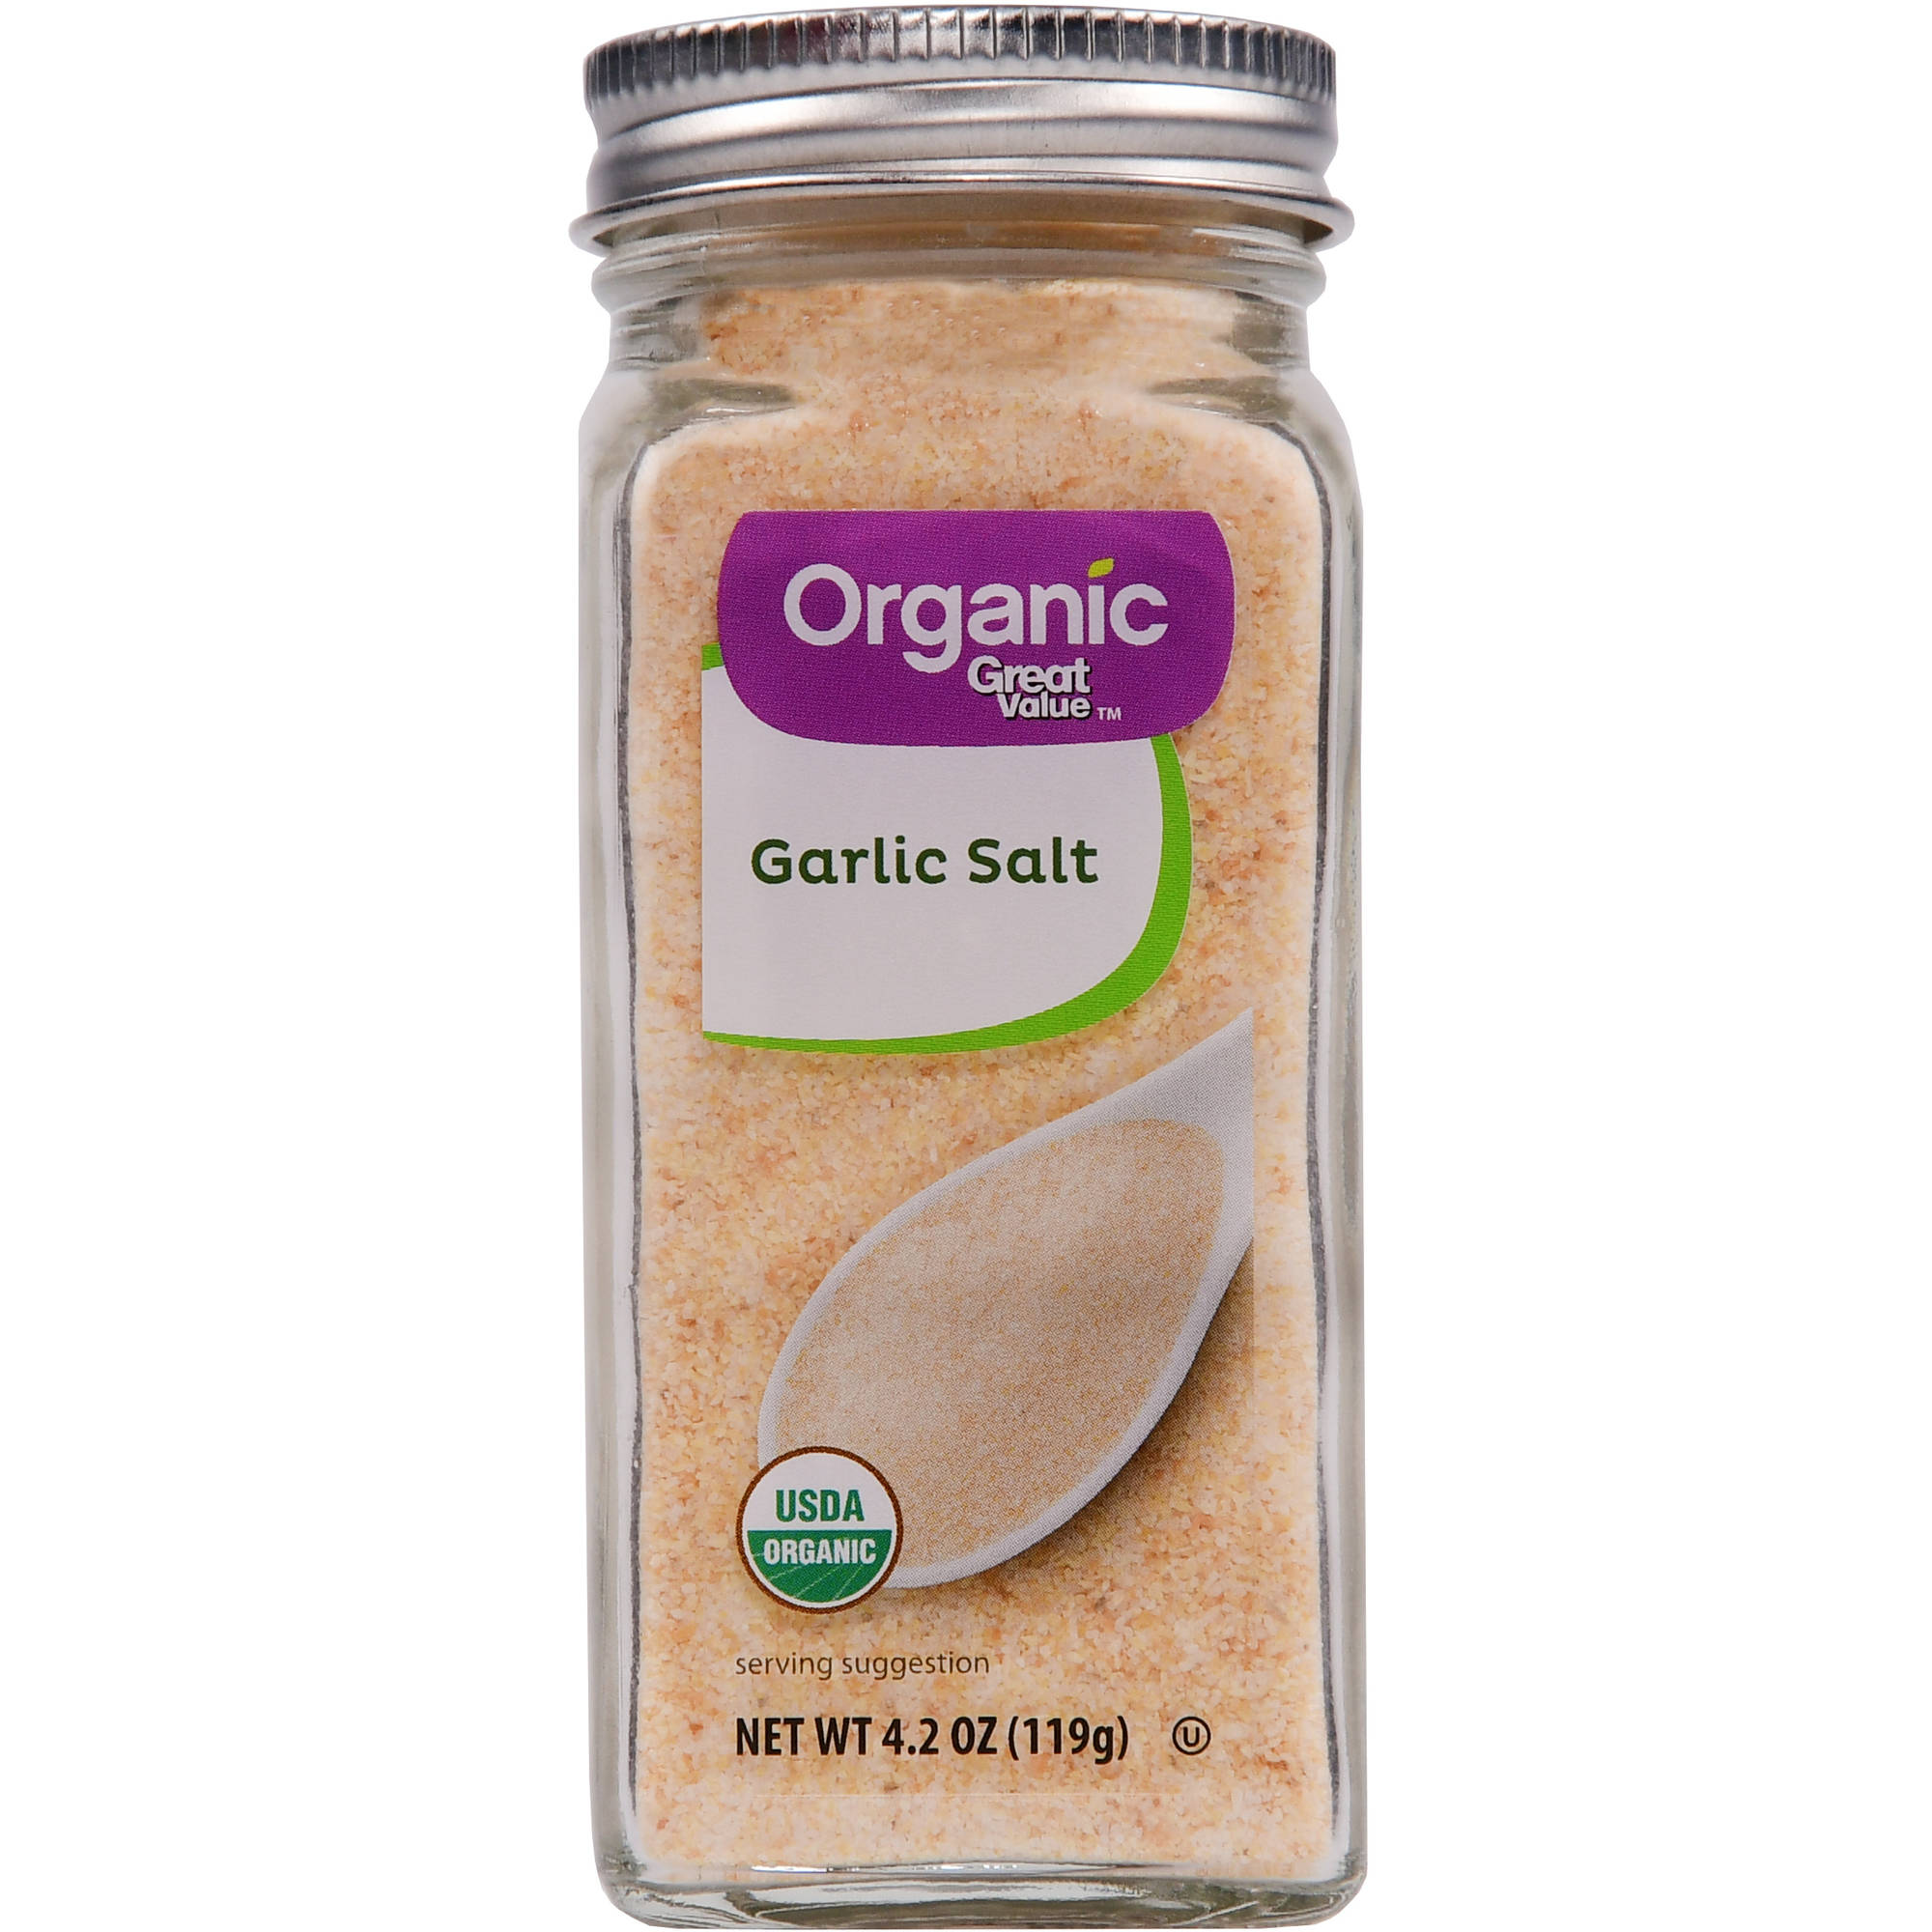 (2 Pack) Great Value Organic Garlic Salt, 4.2 oz